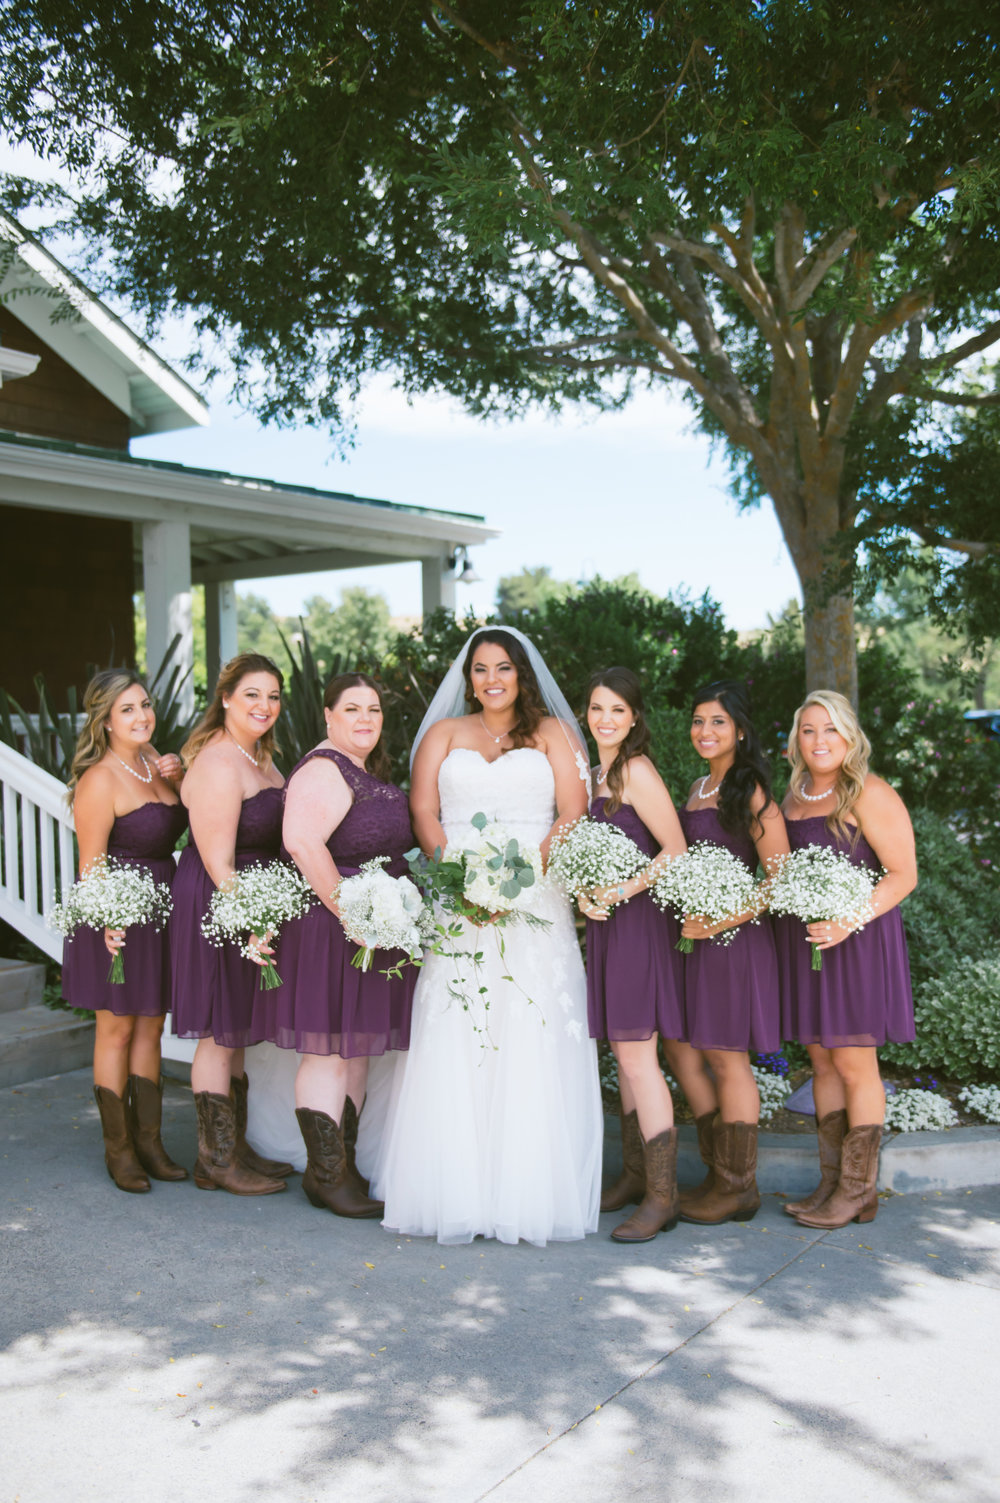 09strawberryfarmsweddingpicturesmichellejohnsonphotography.jpg